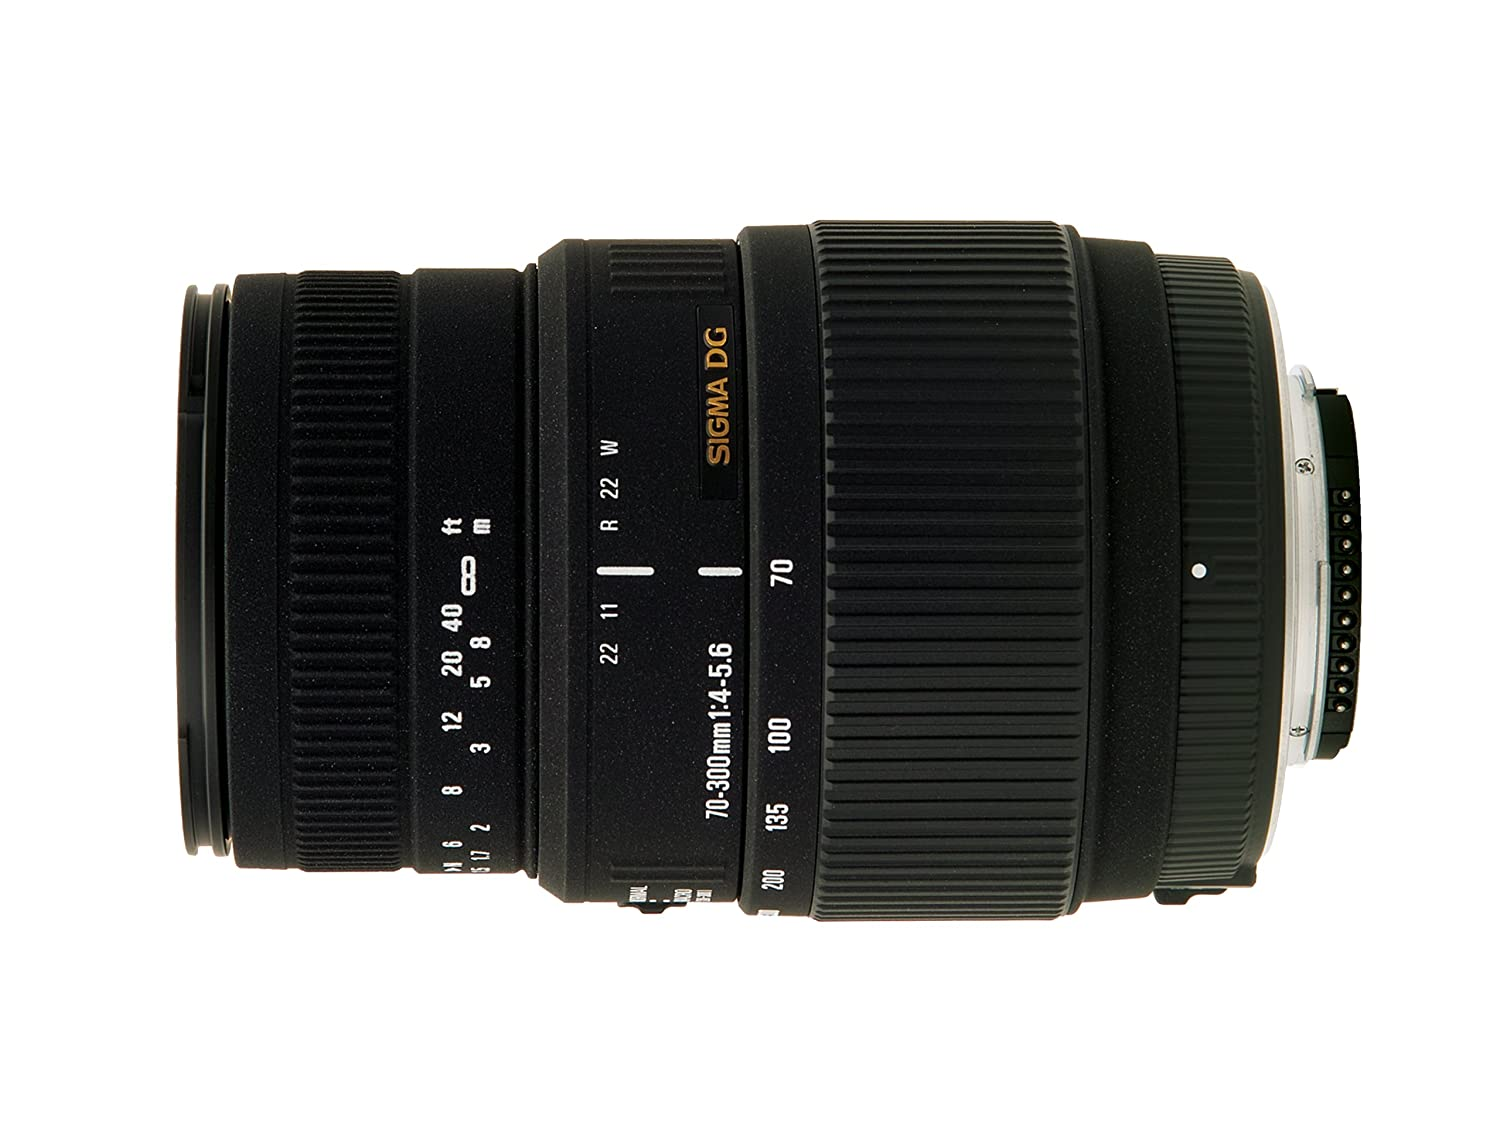 Sigma 70-300mm f/4-5.6 SLD DG Macro Lens with built in motor for Nikon Digital SLR Cameras